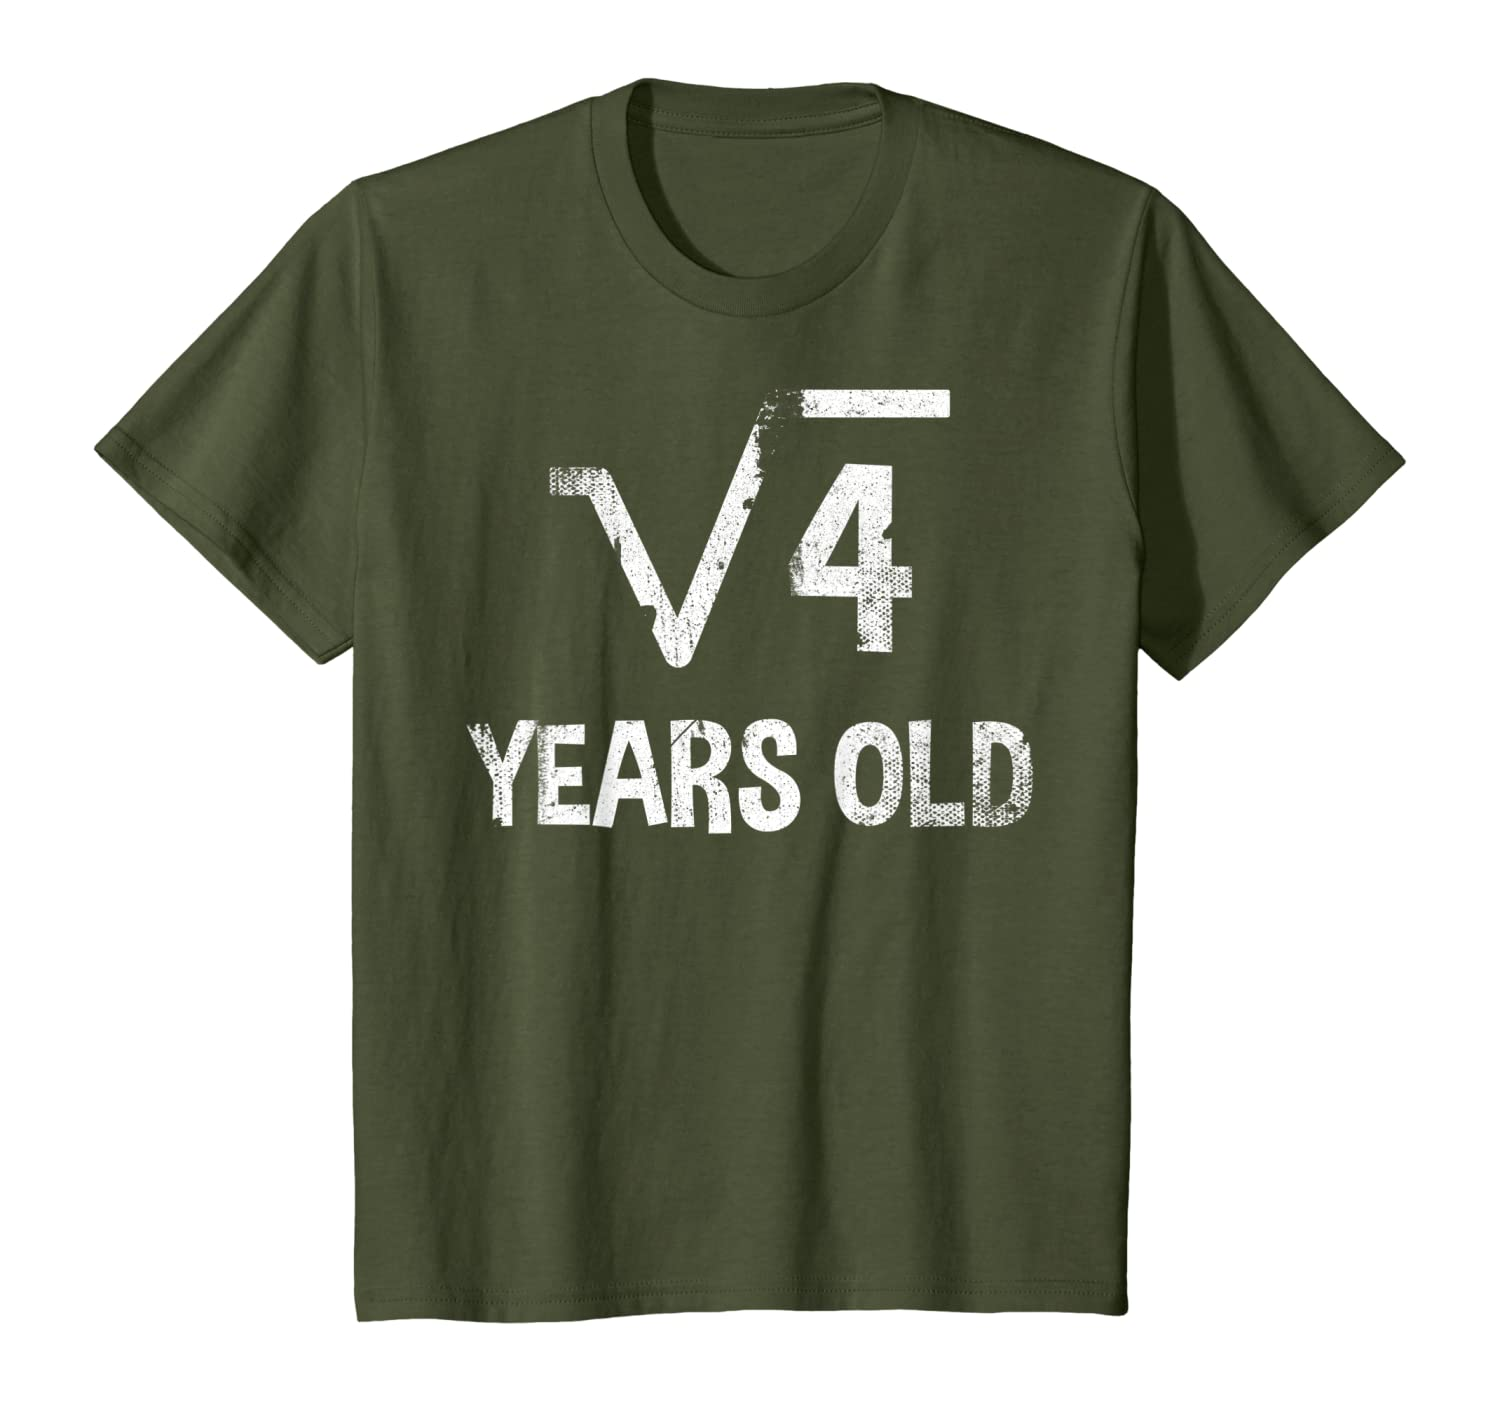 Kids Square Root of 4 – 2nd Birthday T-shirt 2 Years Old T-Shirt